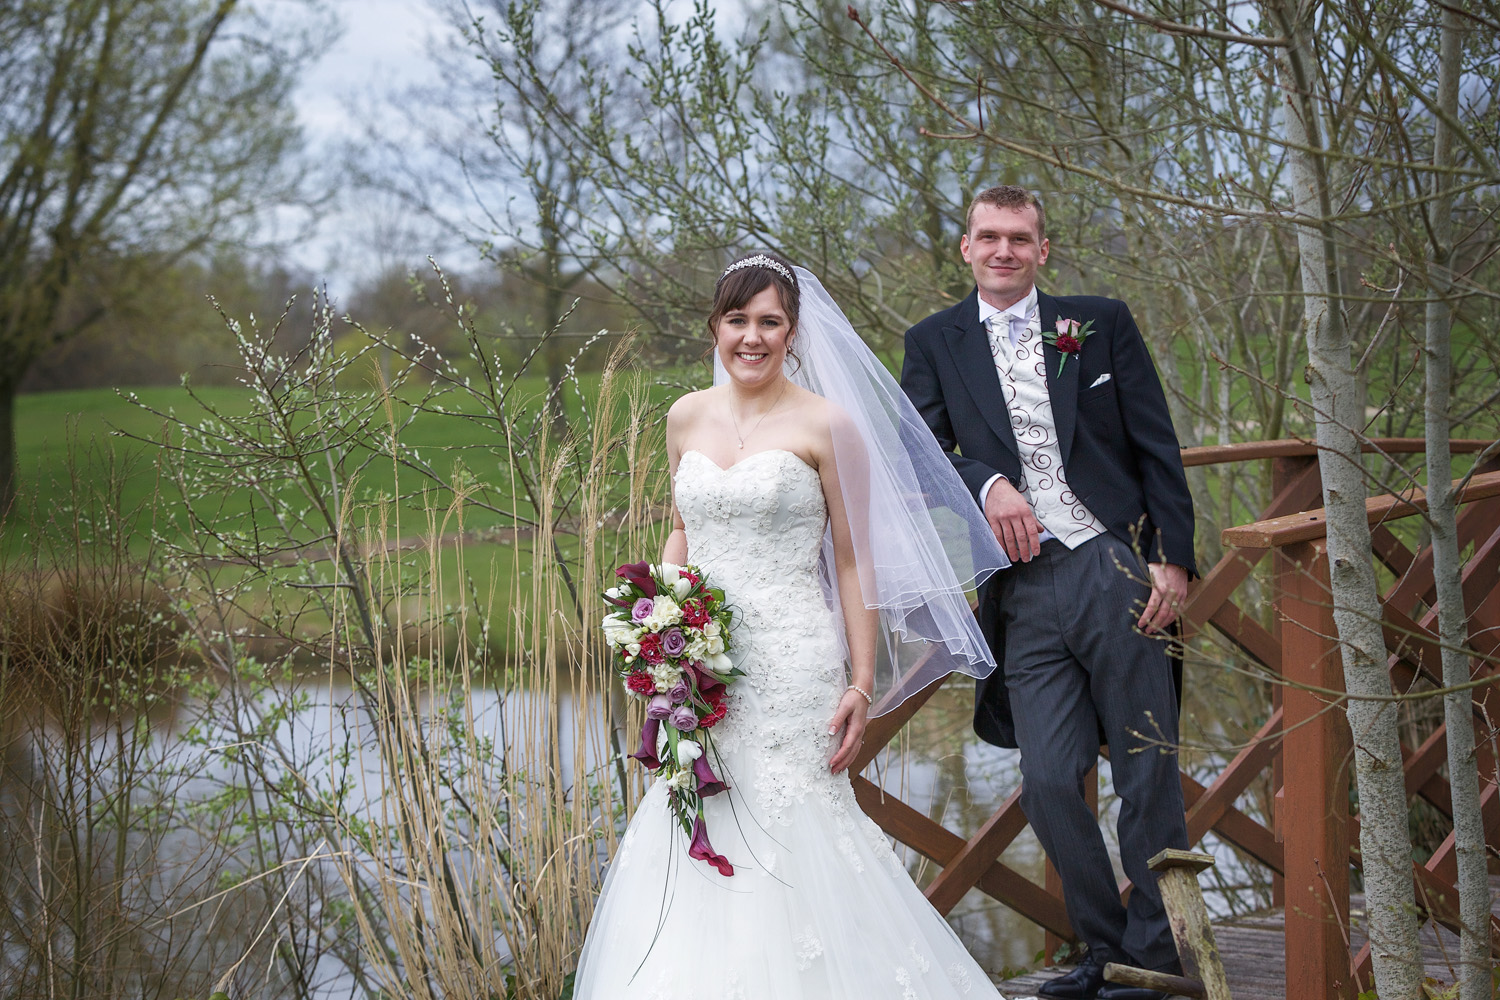 Sandford_Springs_Wedding_Photographer_Newbury_022.jpg